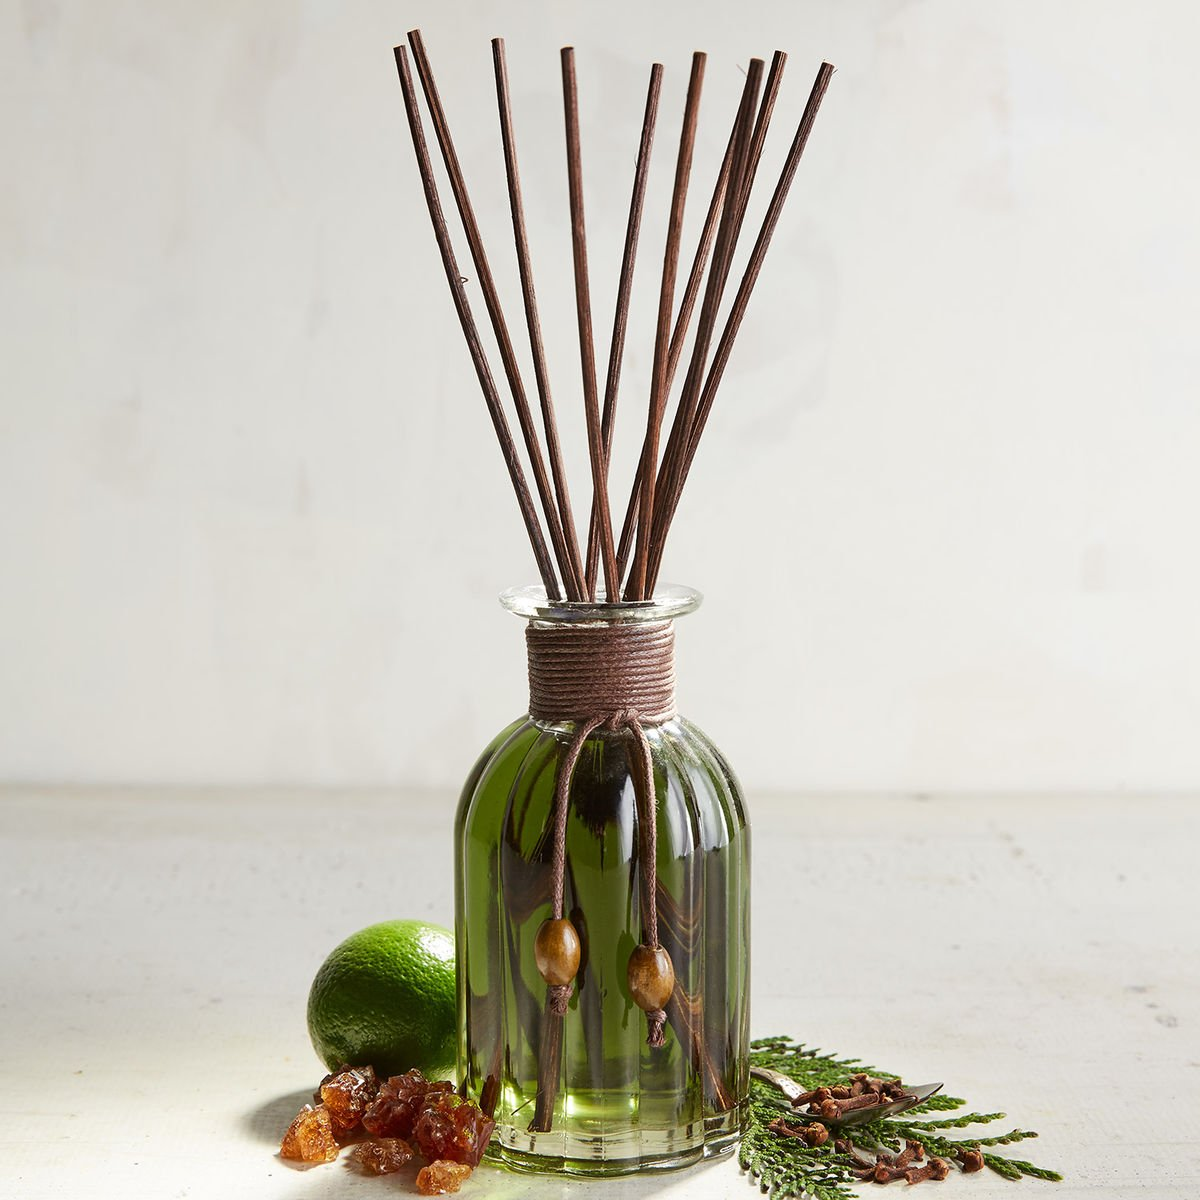 Pier 1 Imports concentrated Reed Diffuser (Cypress)